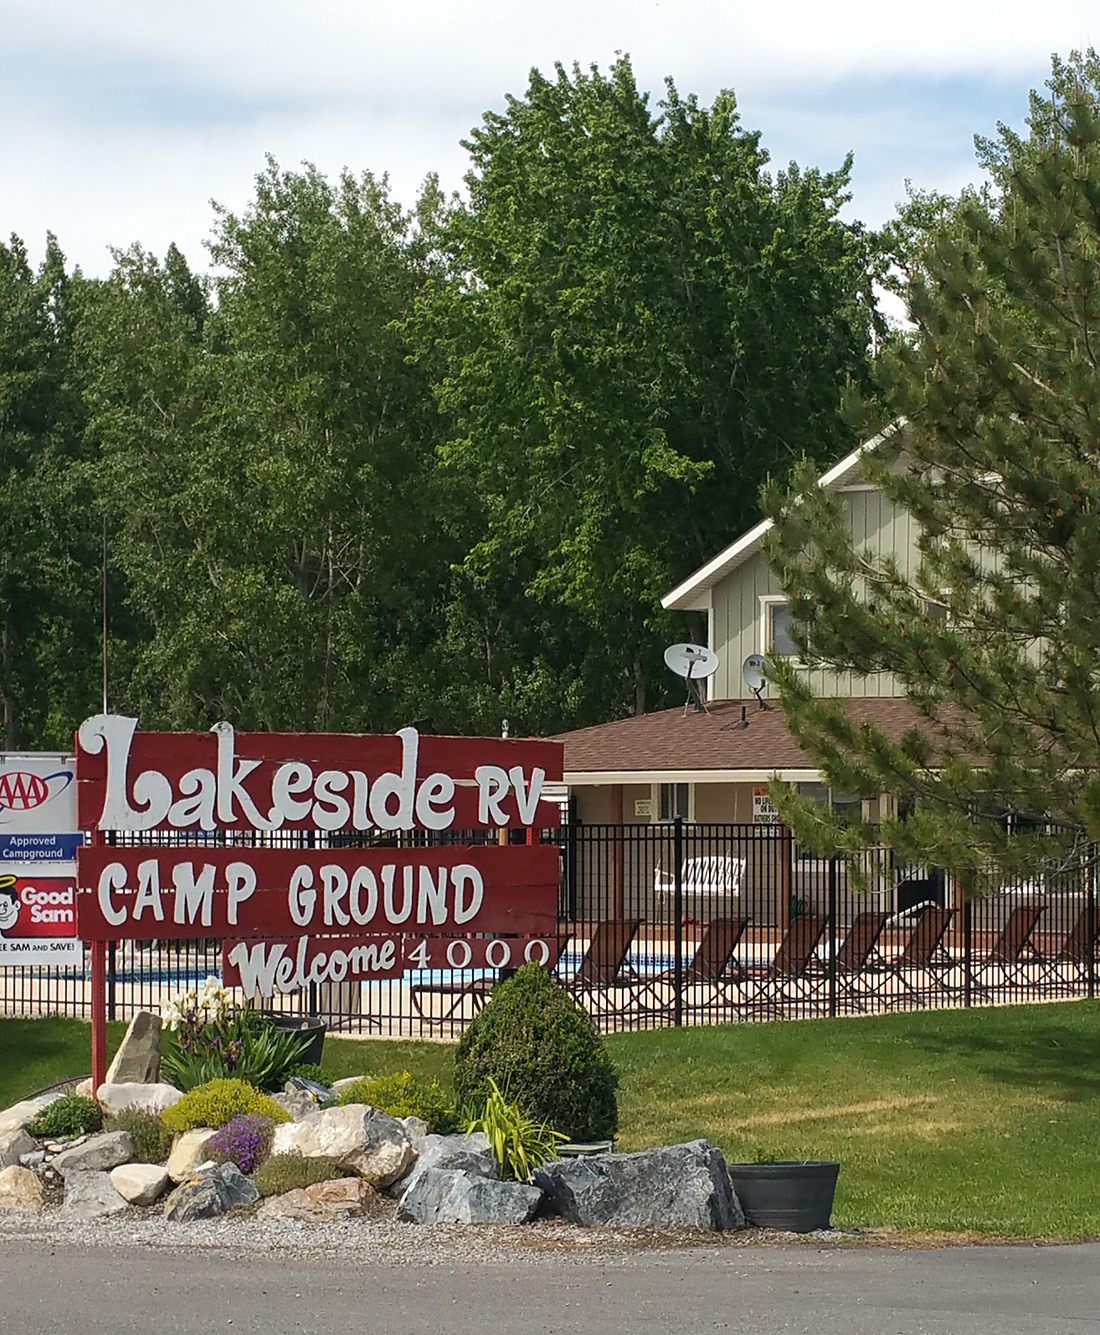 Lakeside RV Campground sign with building and pool in background.